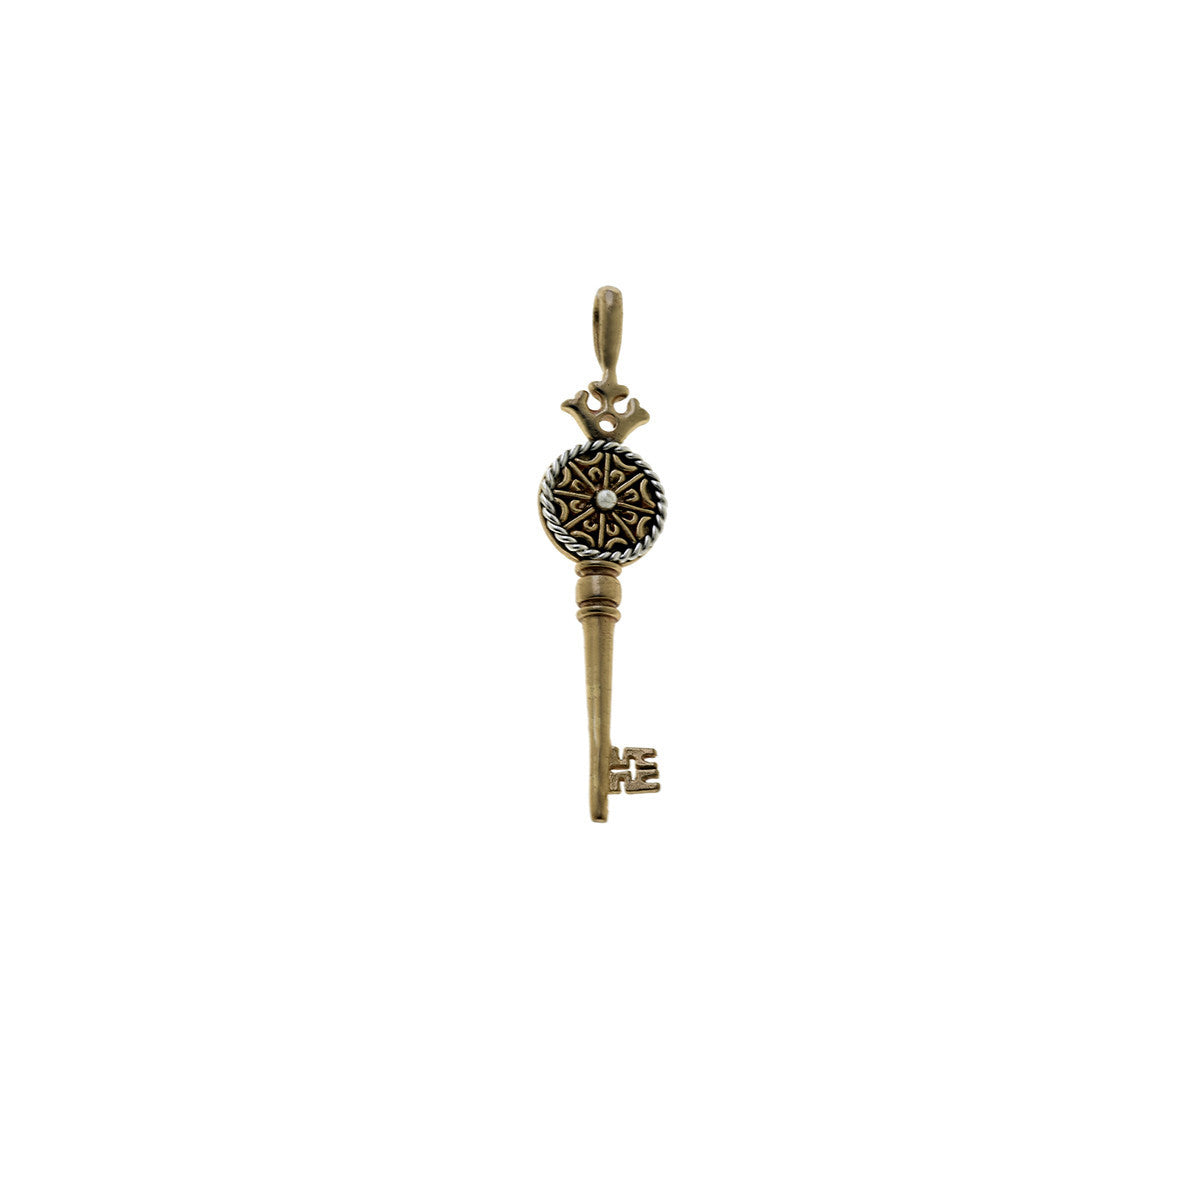 Barnes Metalwork Bronze Sterling Silver Decorative Key Charm - Cynthia Gale New York Jewelry